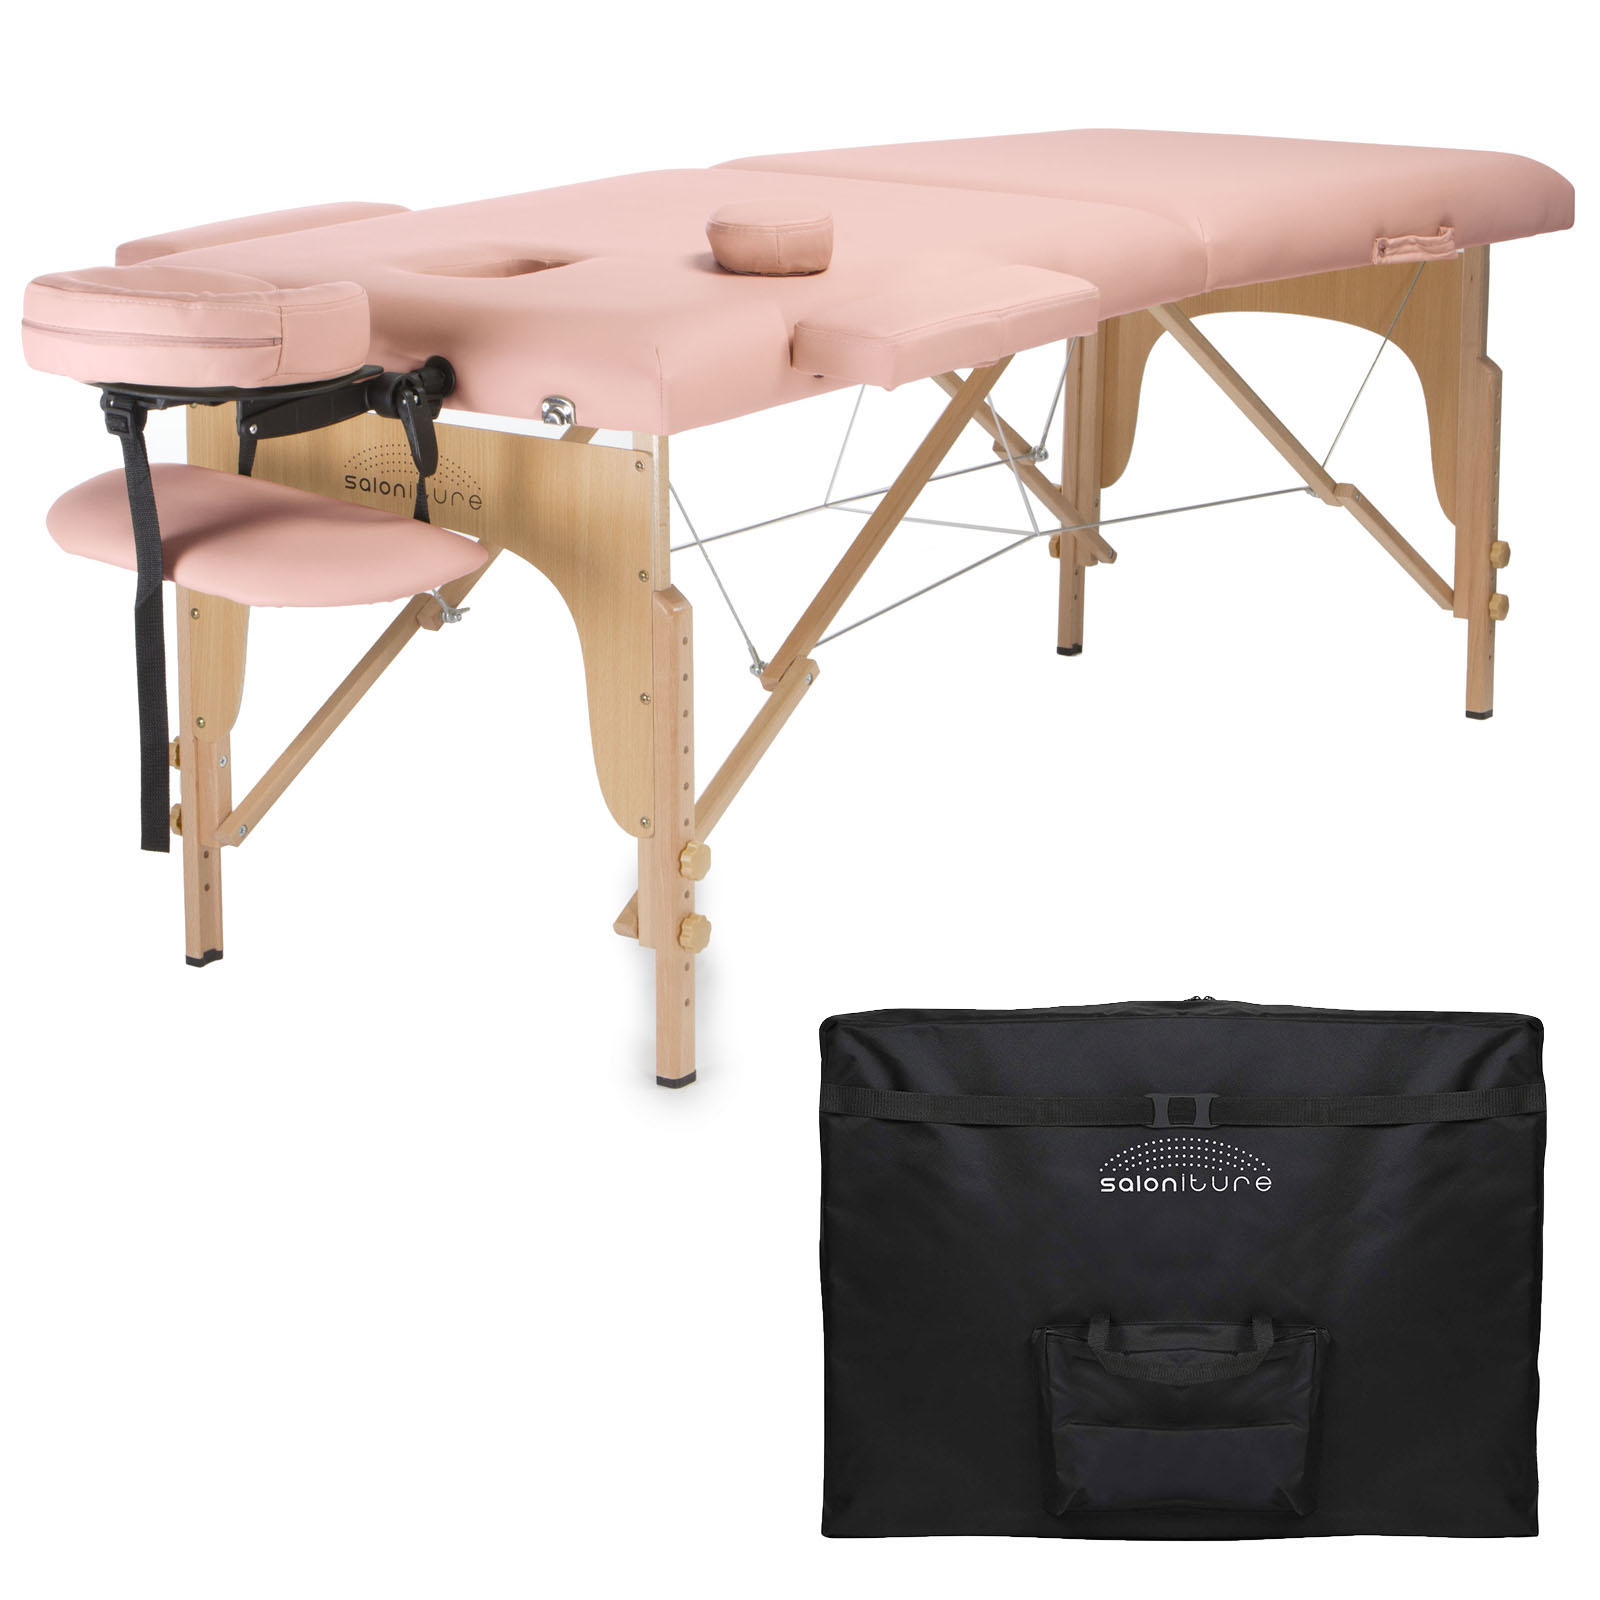 Professional Portable Folding Massage Table with Carrying Case - Pink